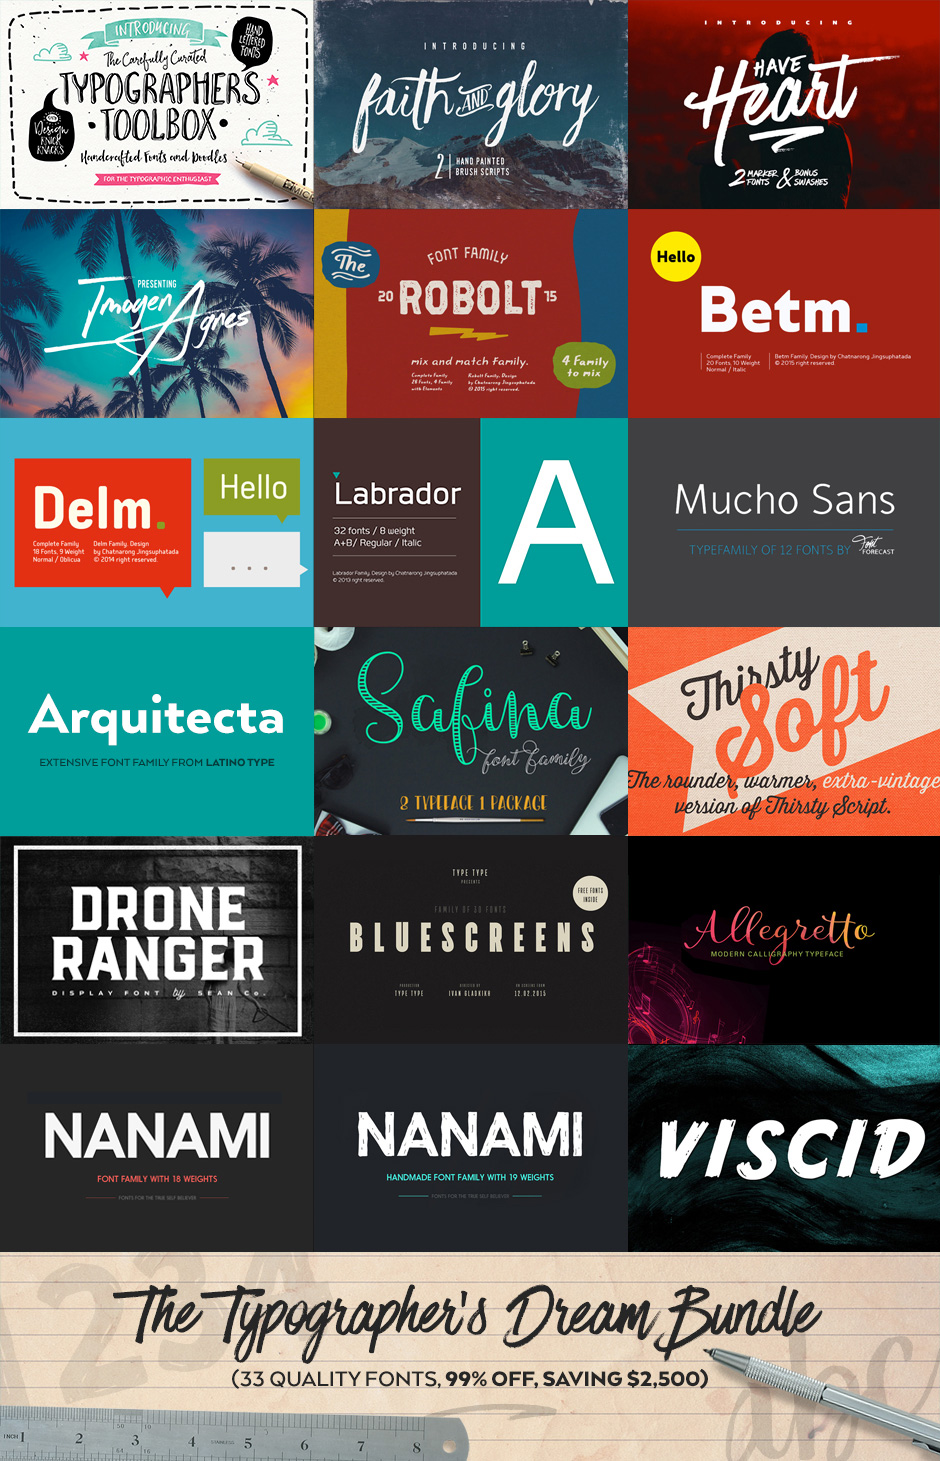 The Typographer's Dream Bundle